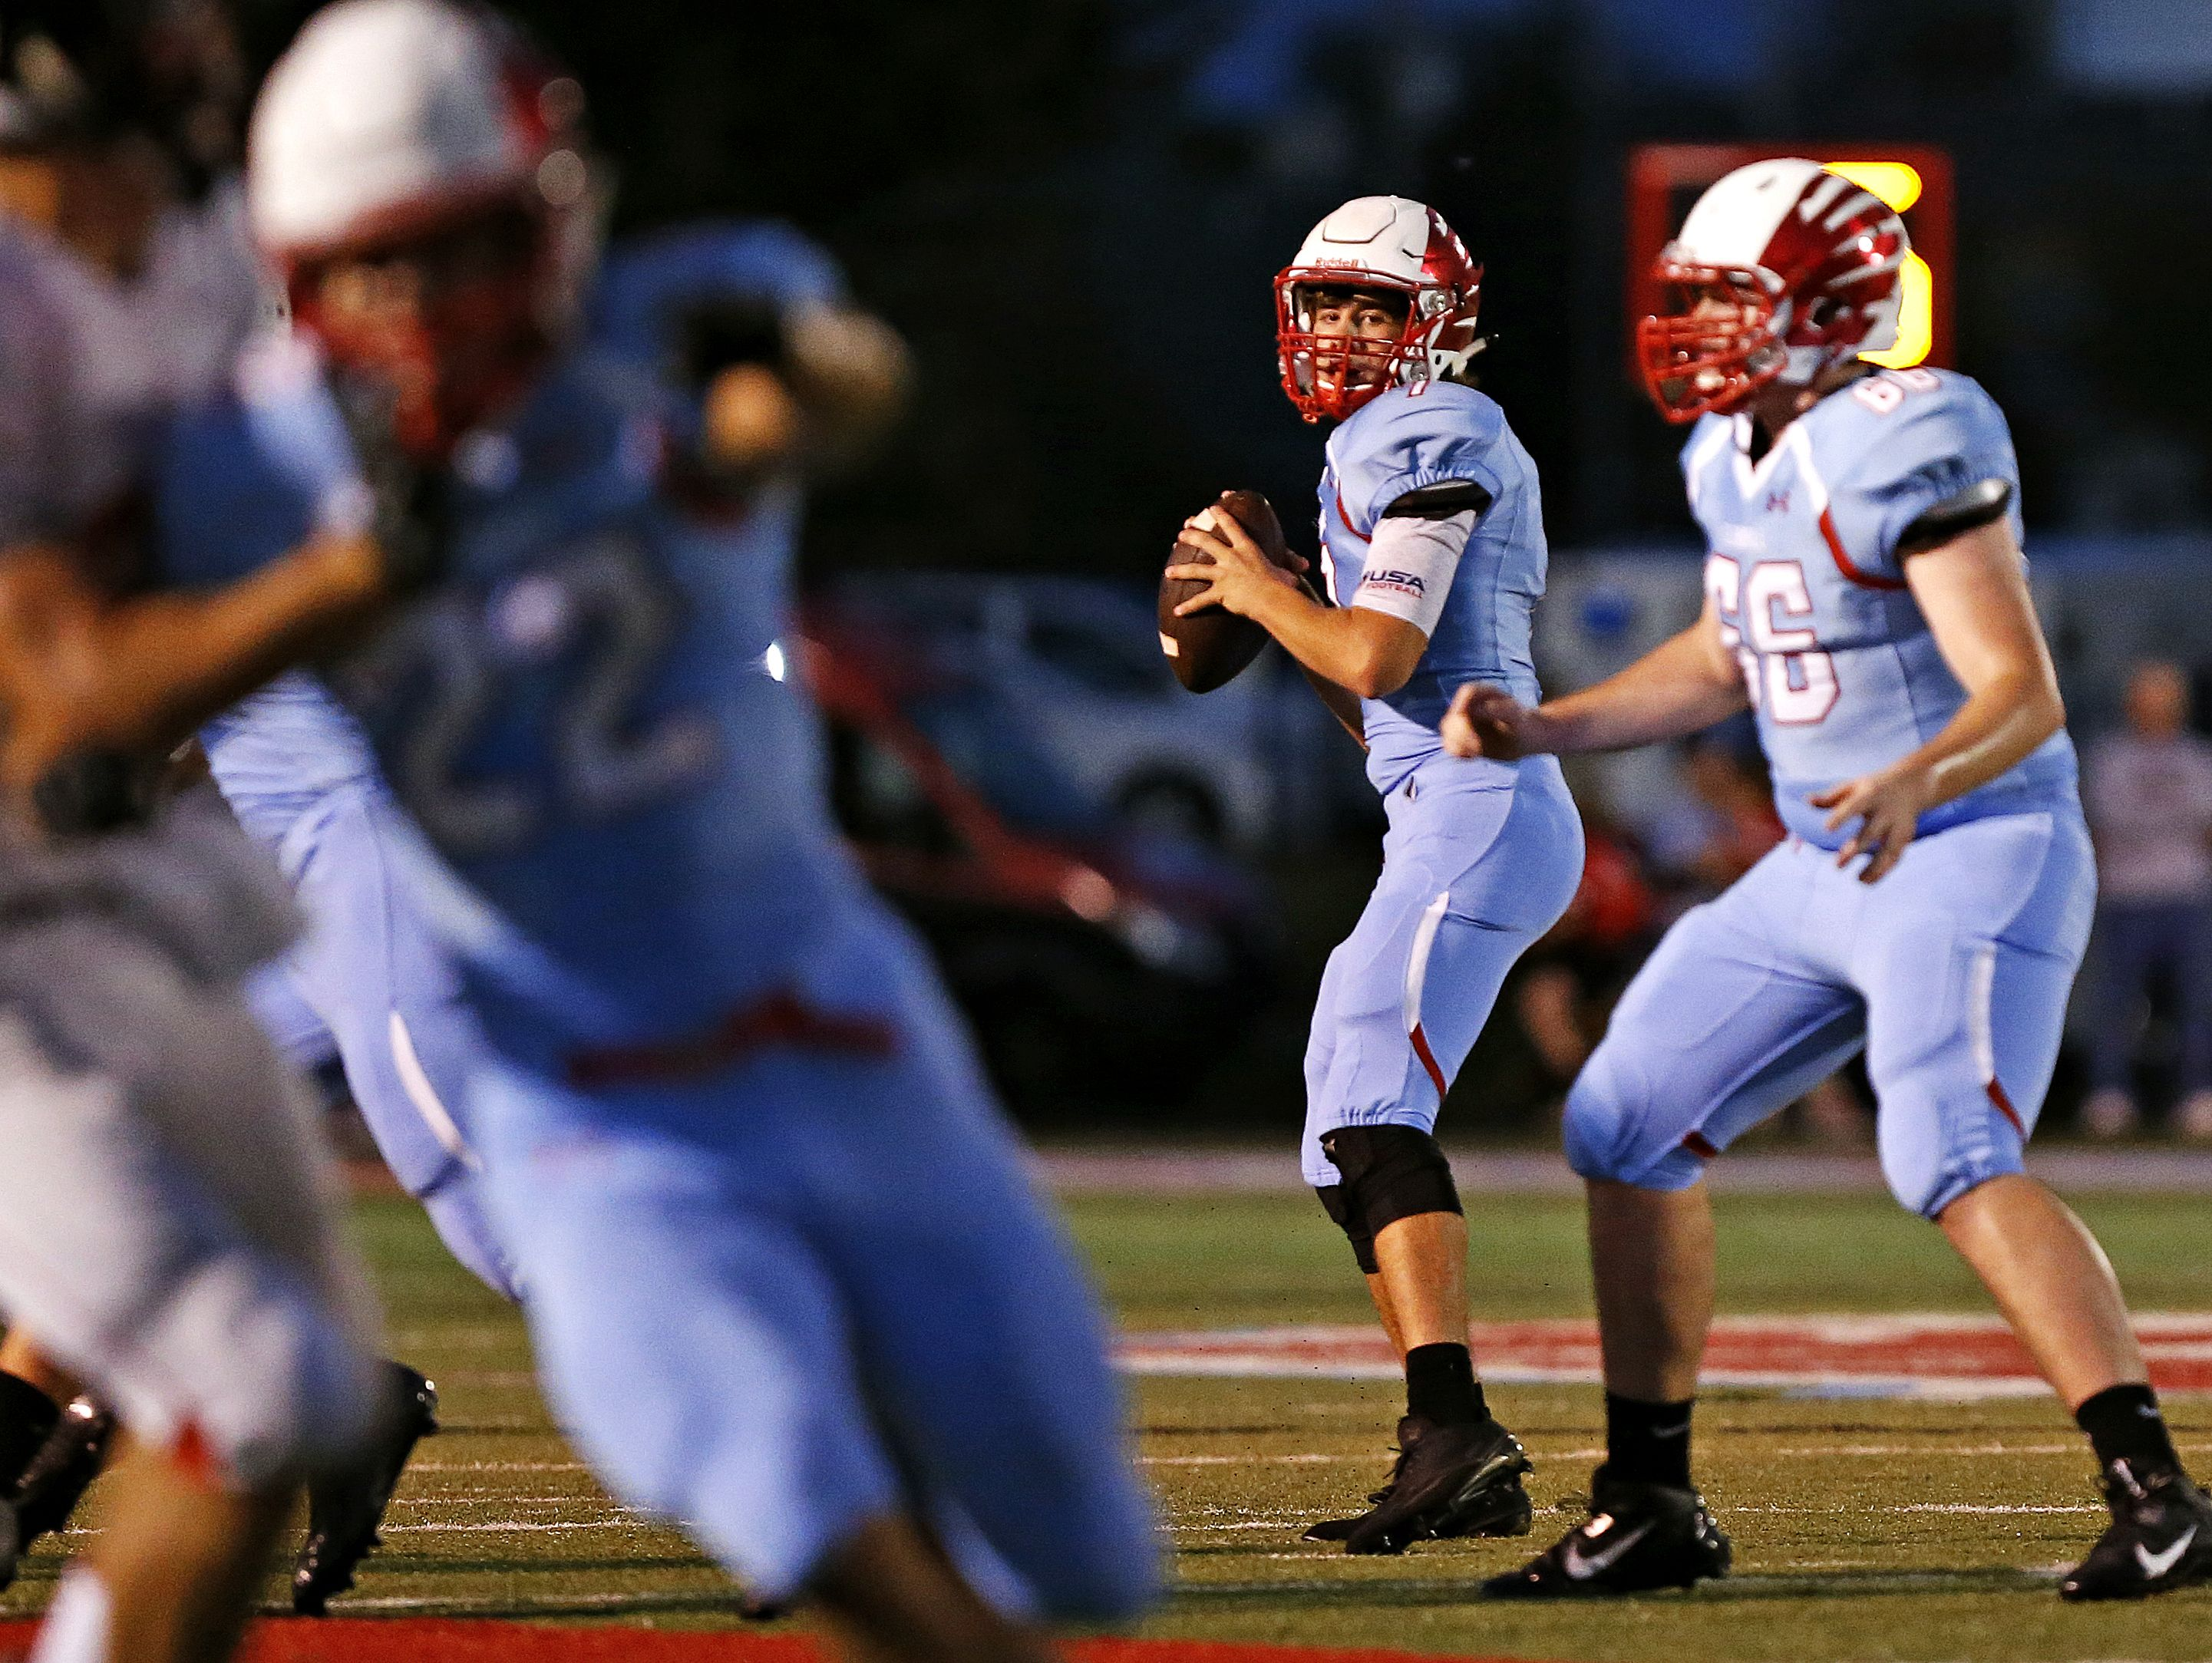 Glendale High School quarterback Alex Huston (7) gets ready to throw in the Falcons' game against West Plains on Sept. 2.